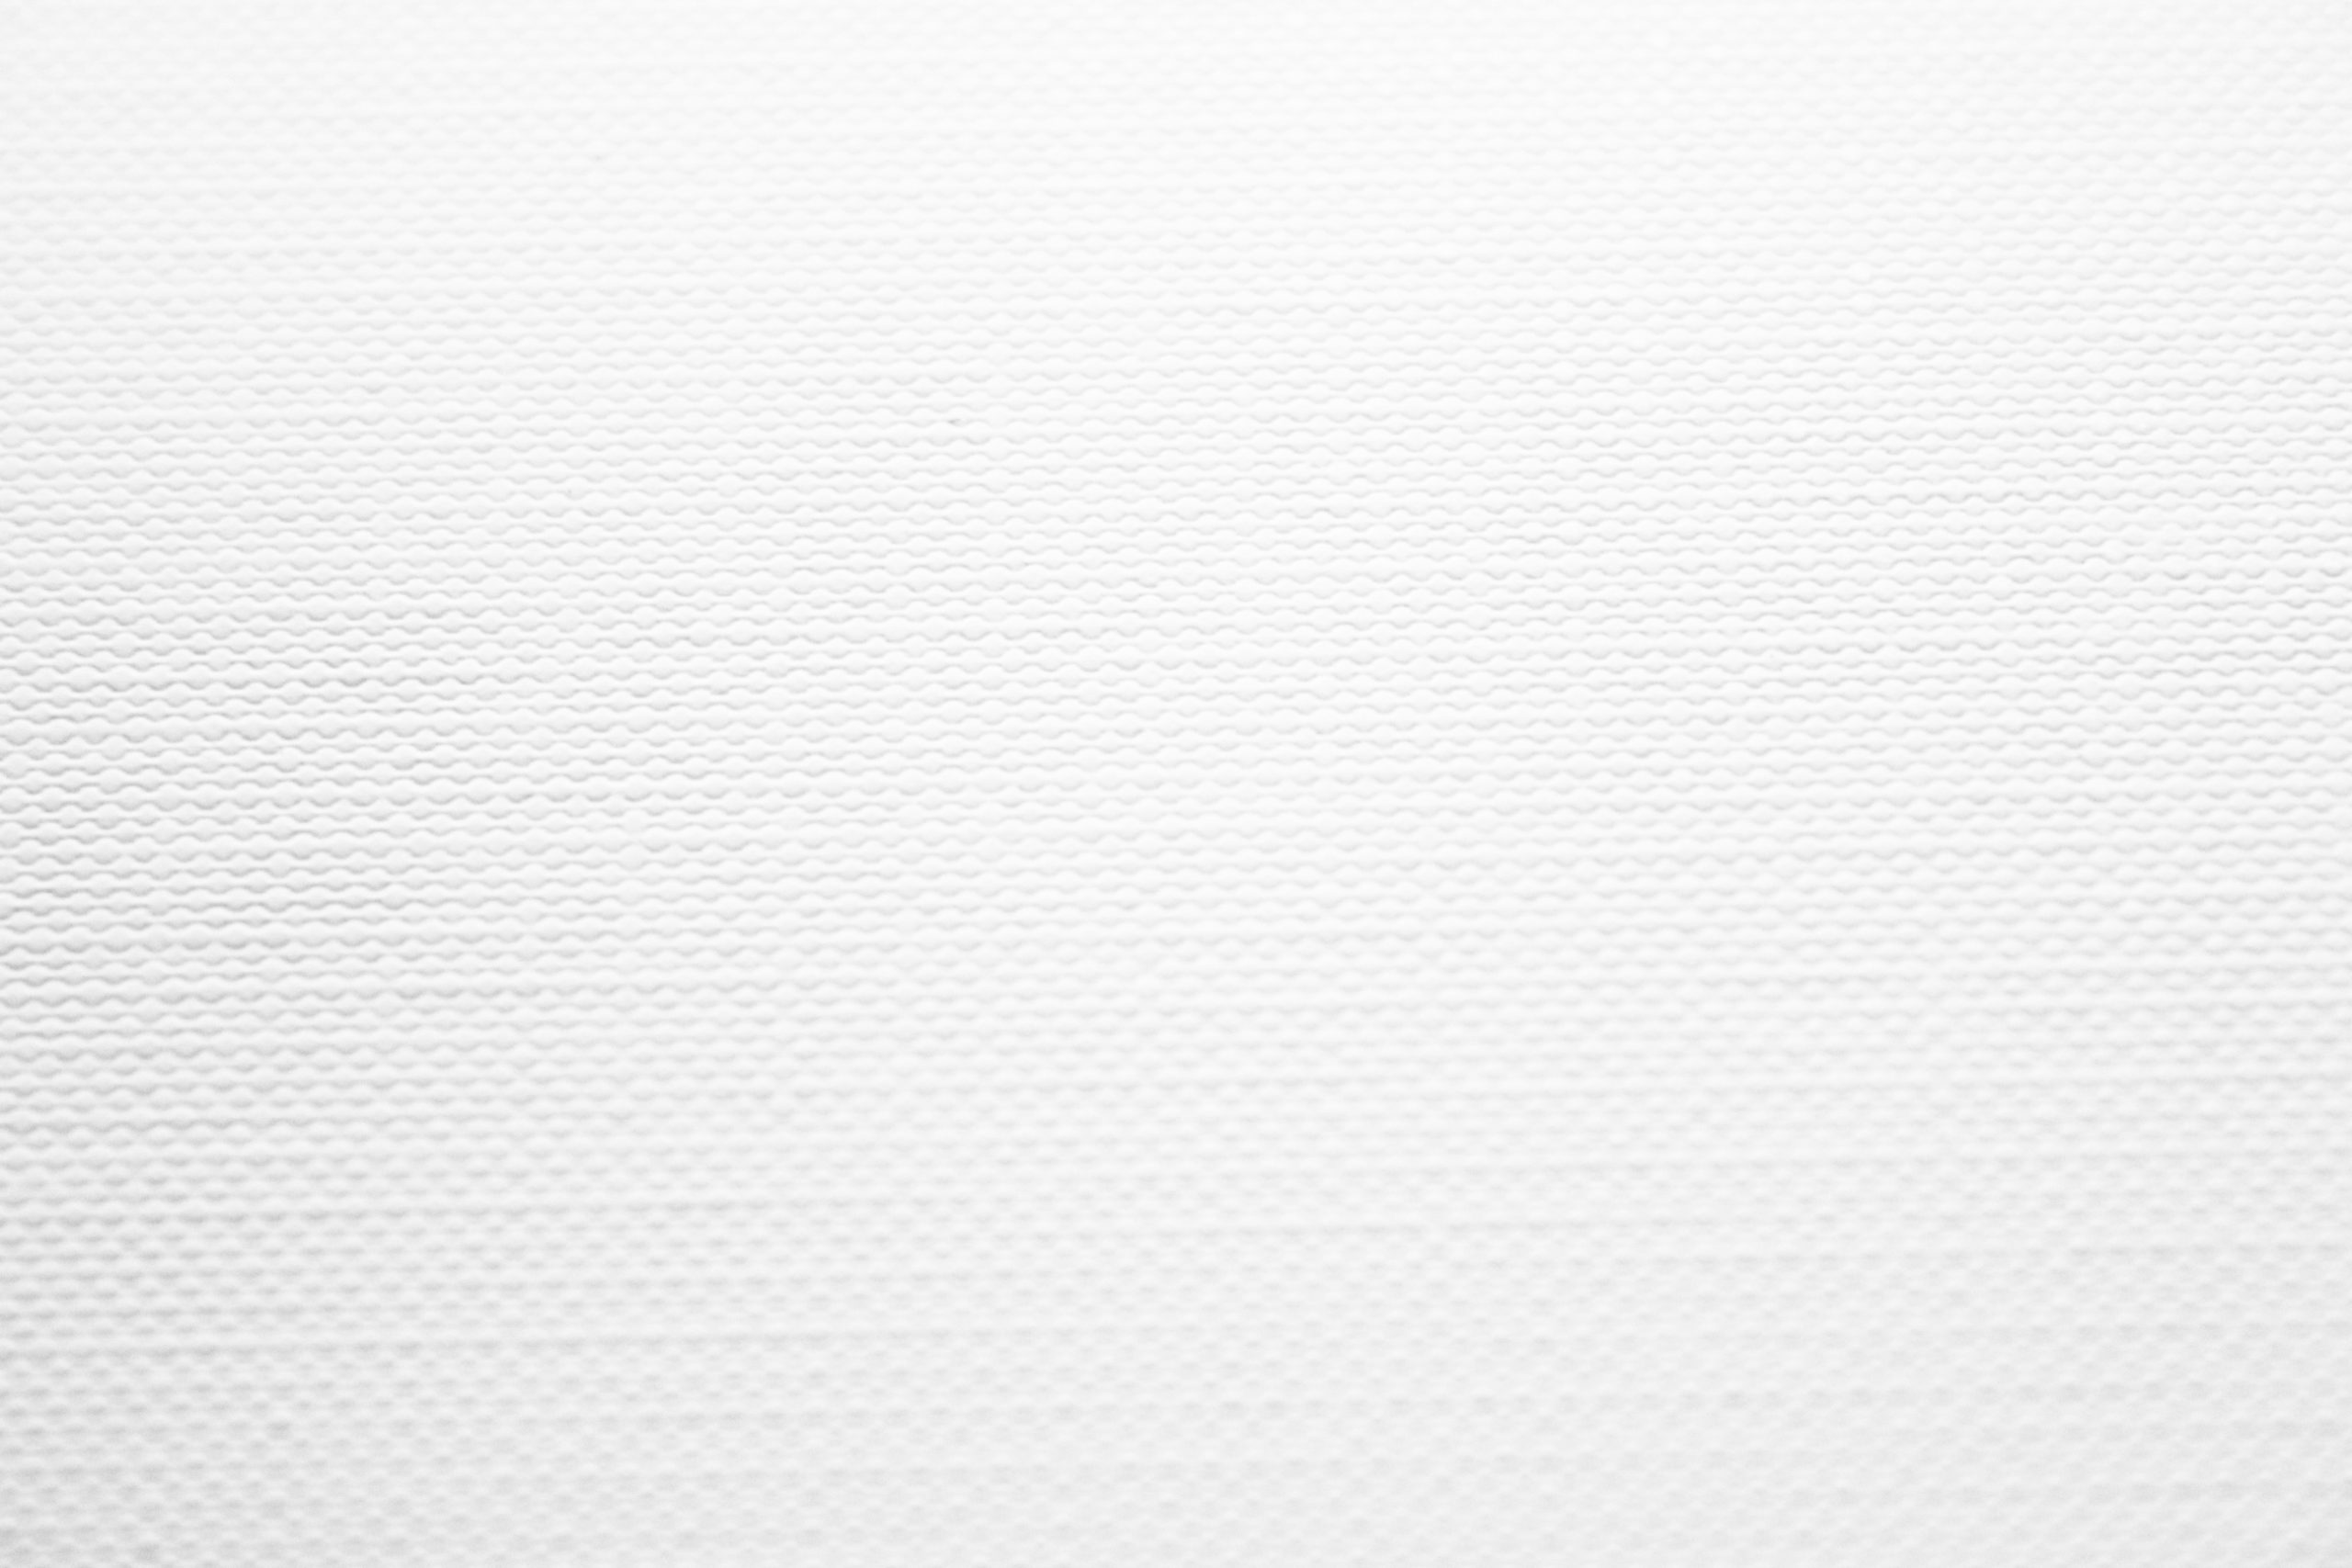 A5 WHITE LINEN / EMBOSSED / TEXTURED CARD 260gsm Card Stock High Quality